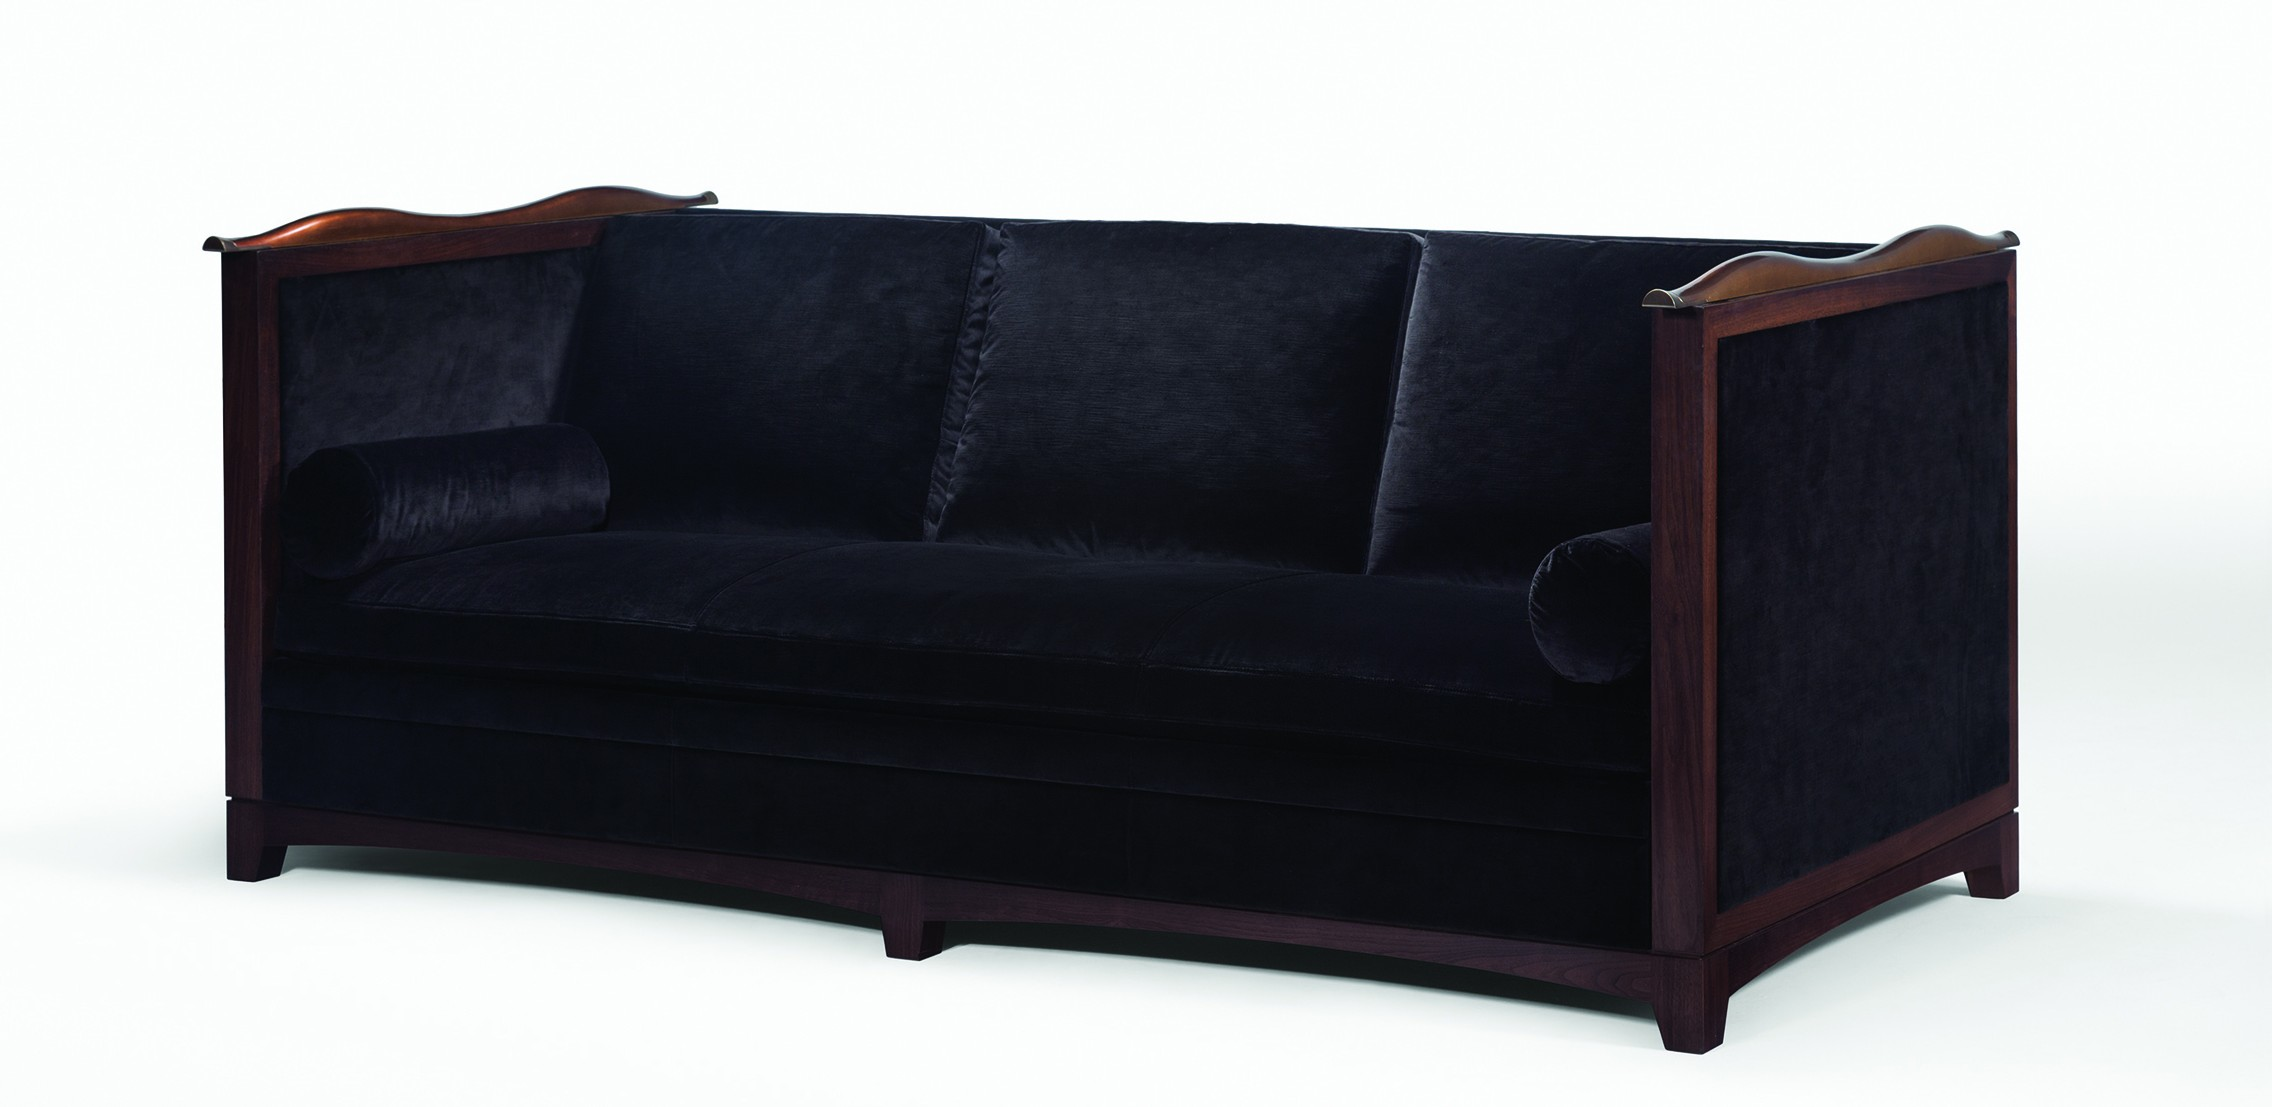 holly hunt sofa cost city evansville hours launches ralph rucci collection for